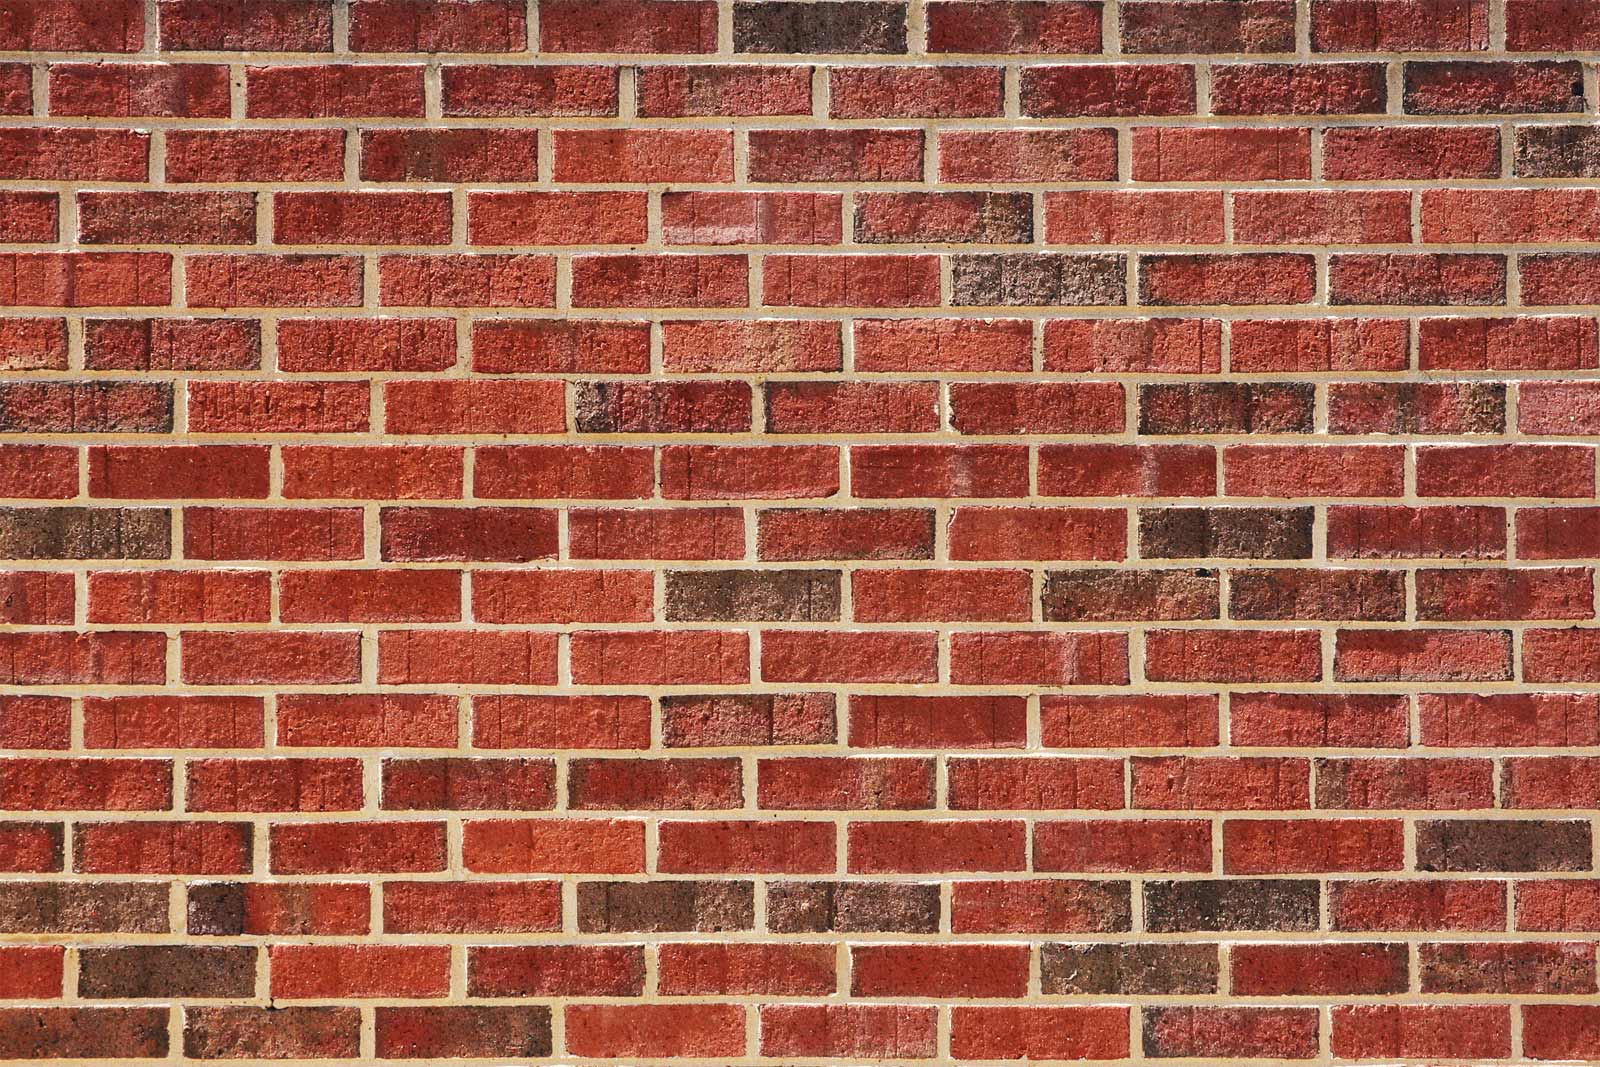 12 Absolute brick wall designs 1600x1067